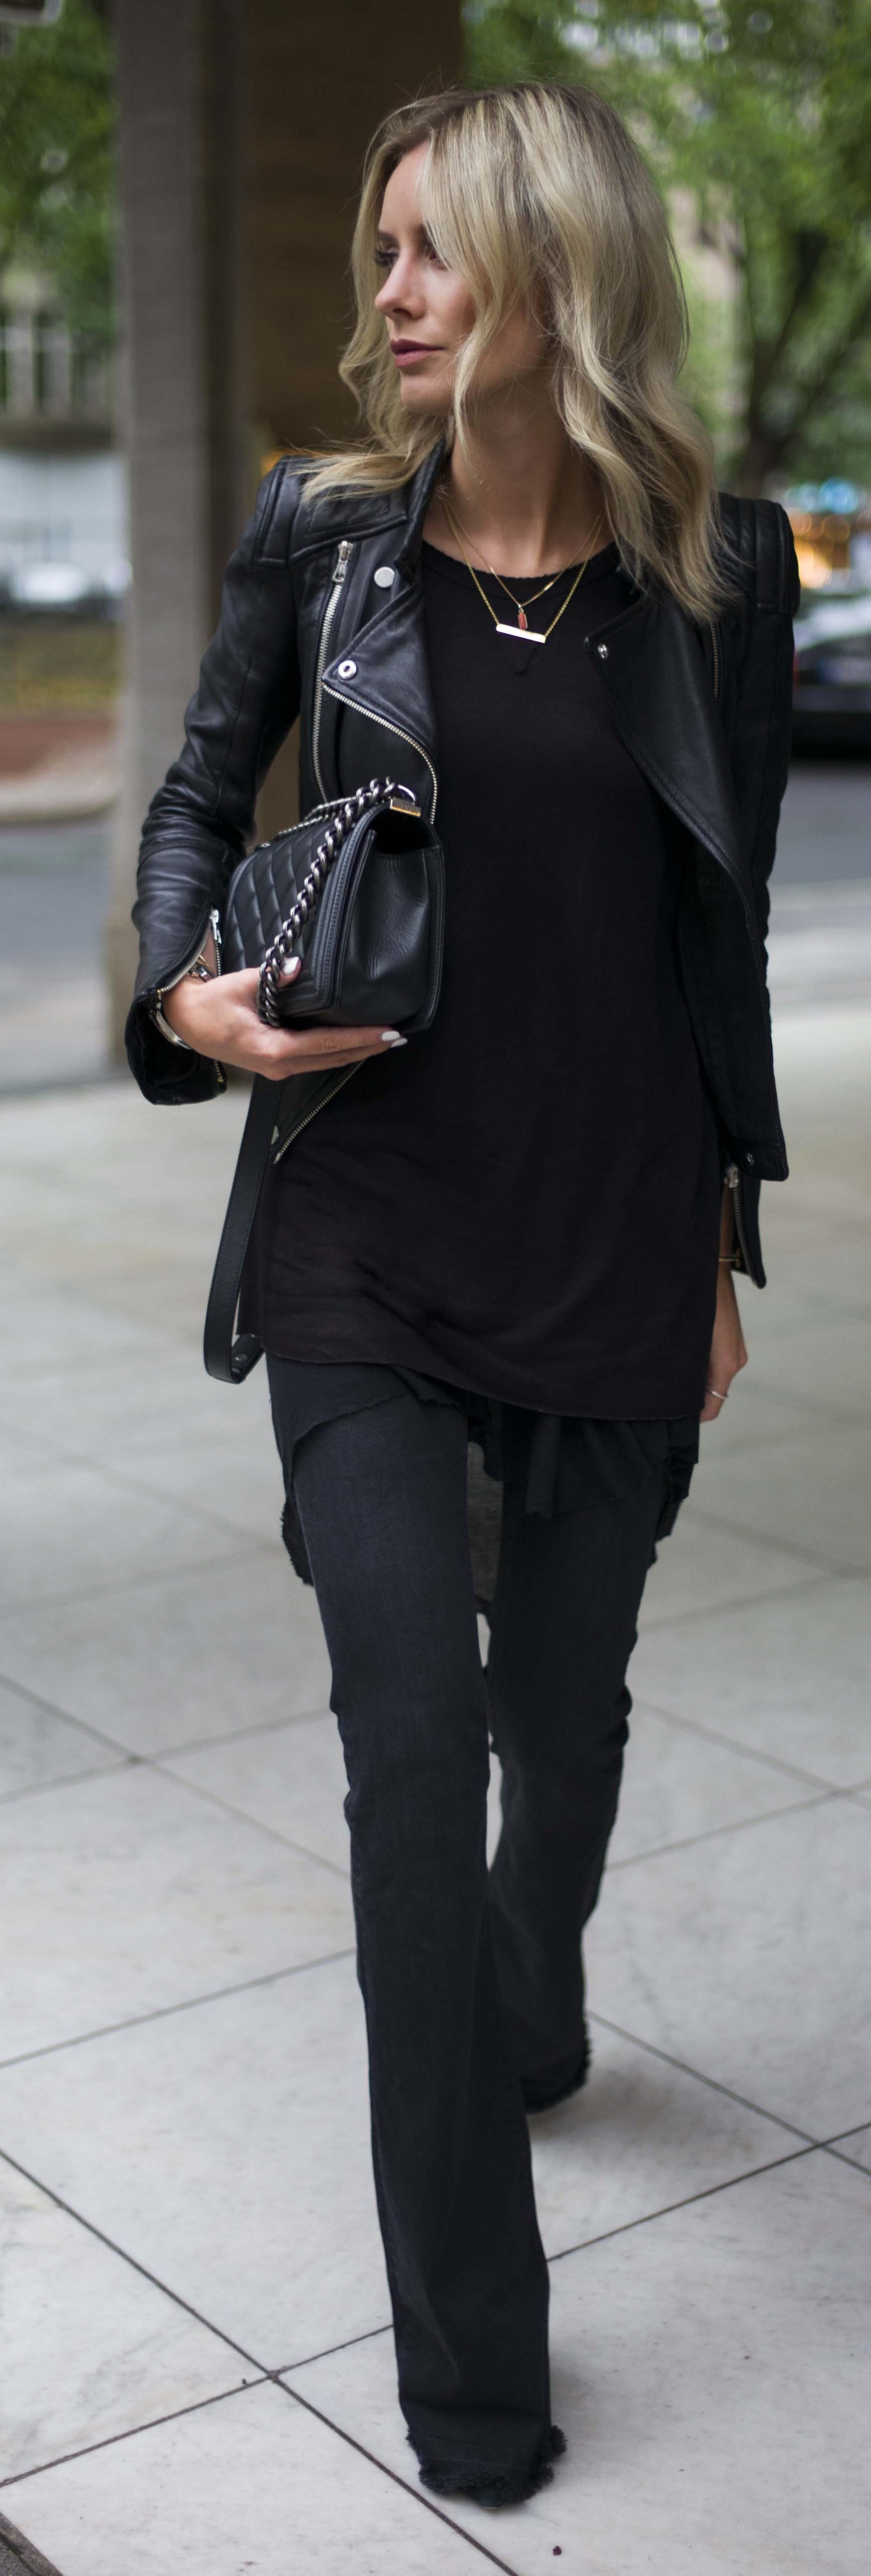 Everything Black Urban Outfit